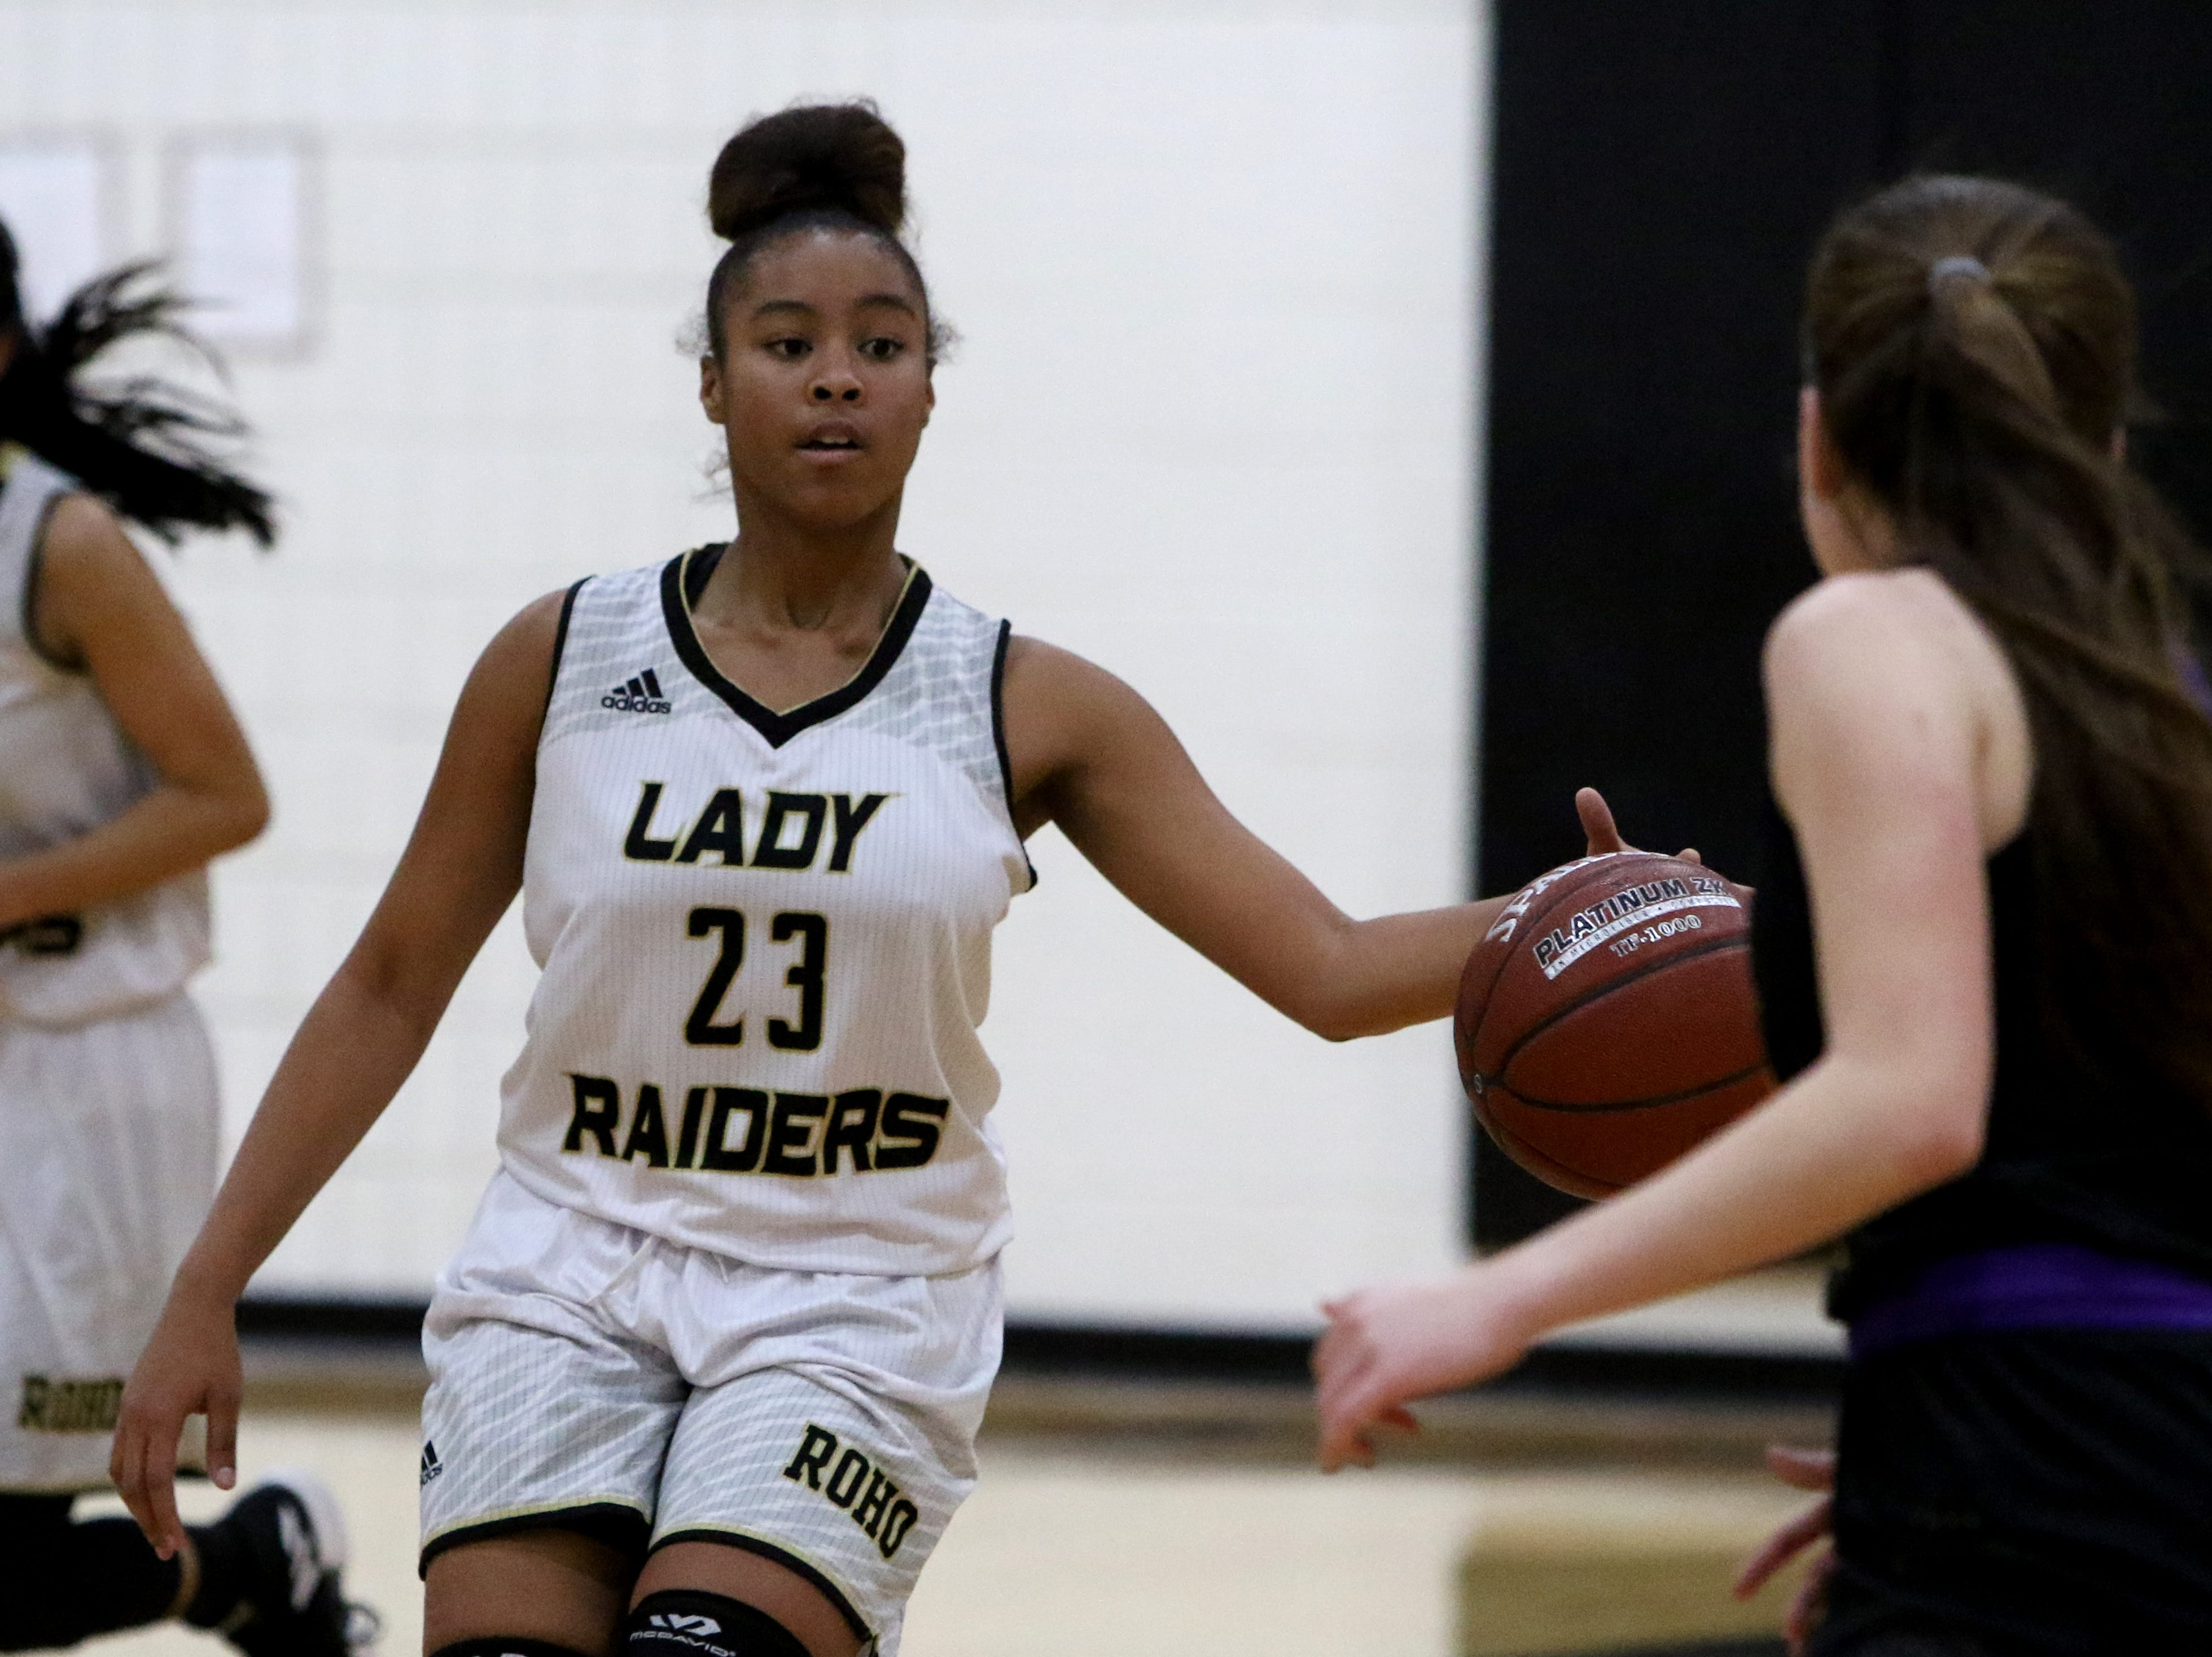 Rider's Taleyah Jones dribbles in the game against Abilene Wylie Friday, Jan. 4, 2019 at McNiel Middle School.